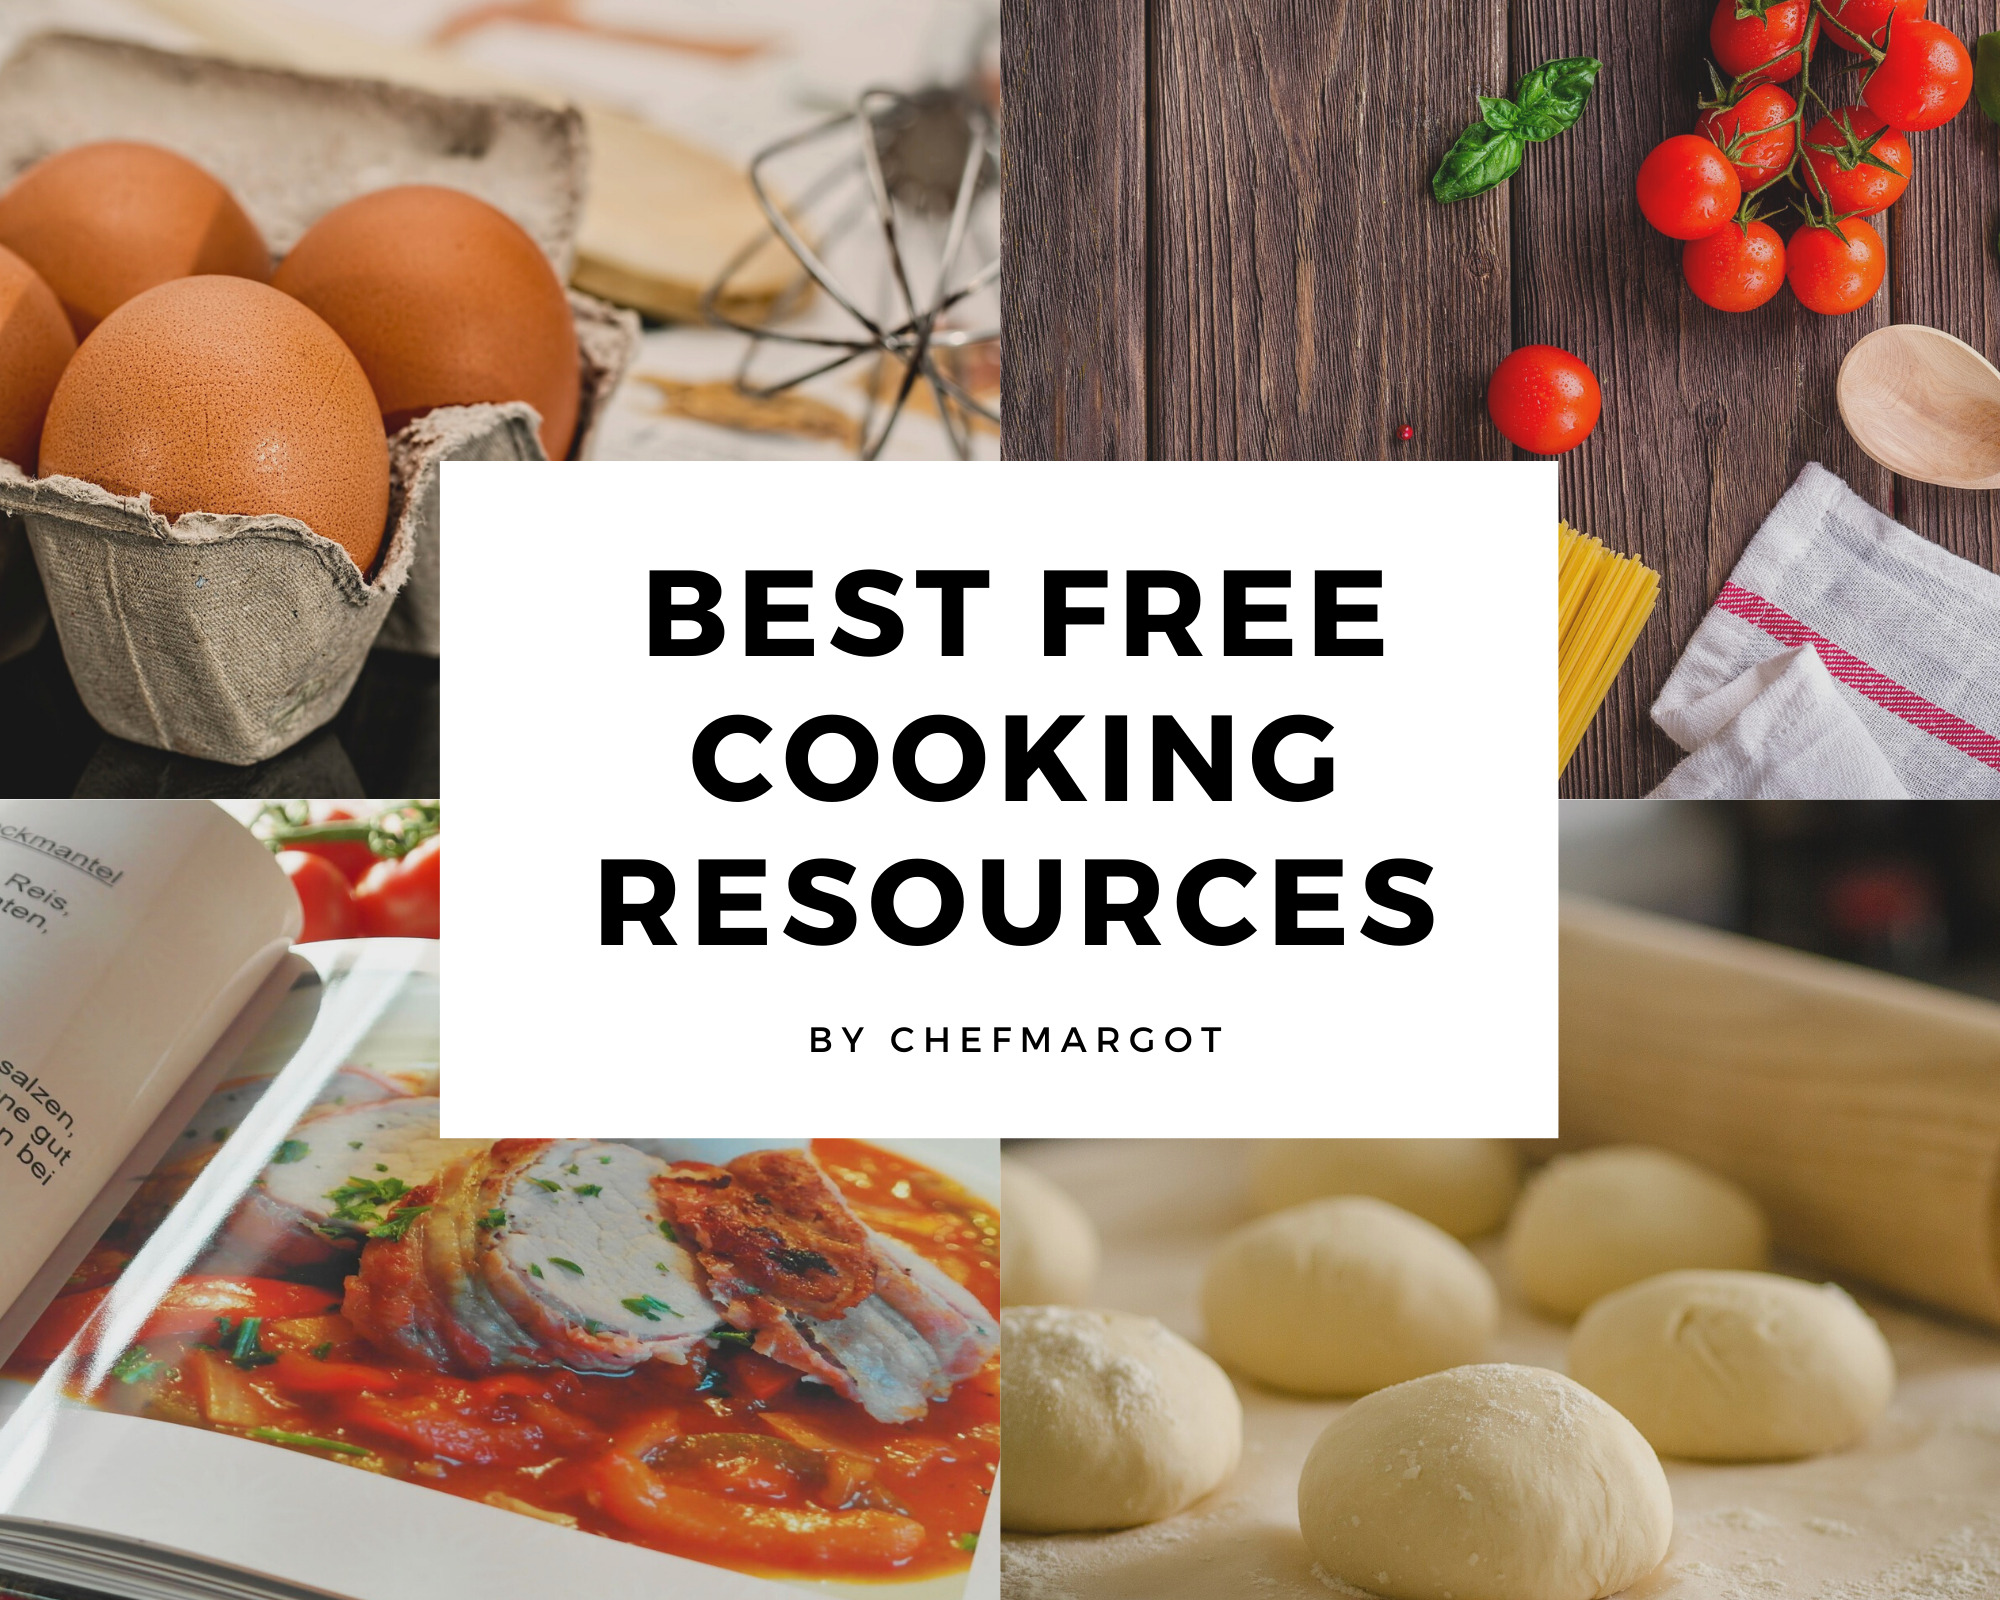 Best Free Cooking Resources